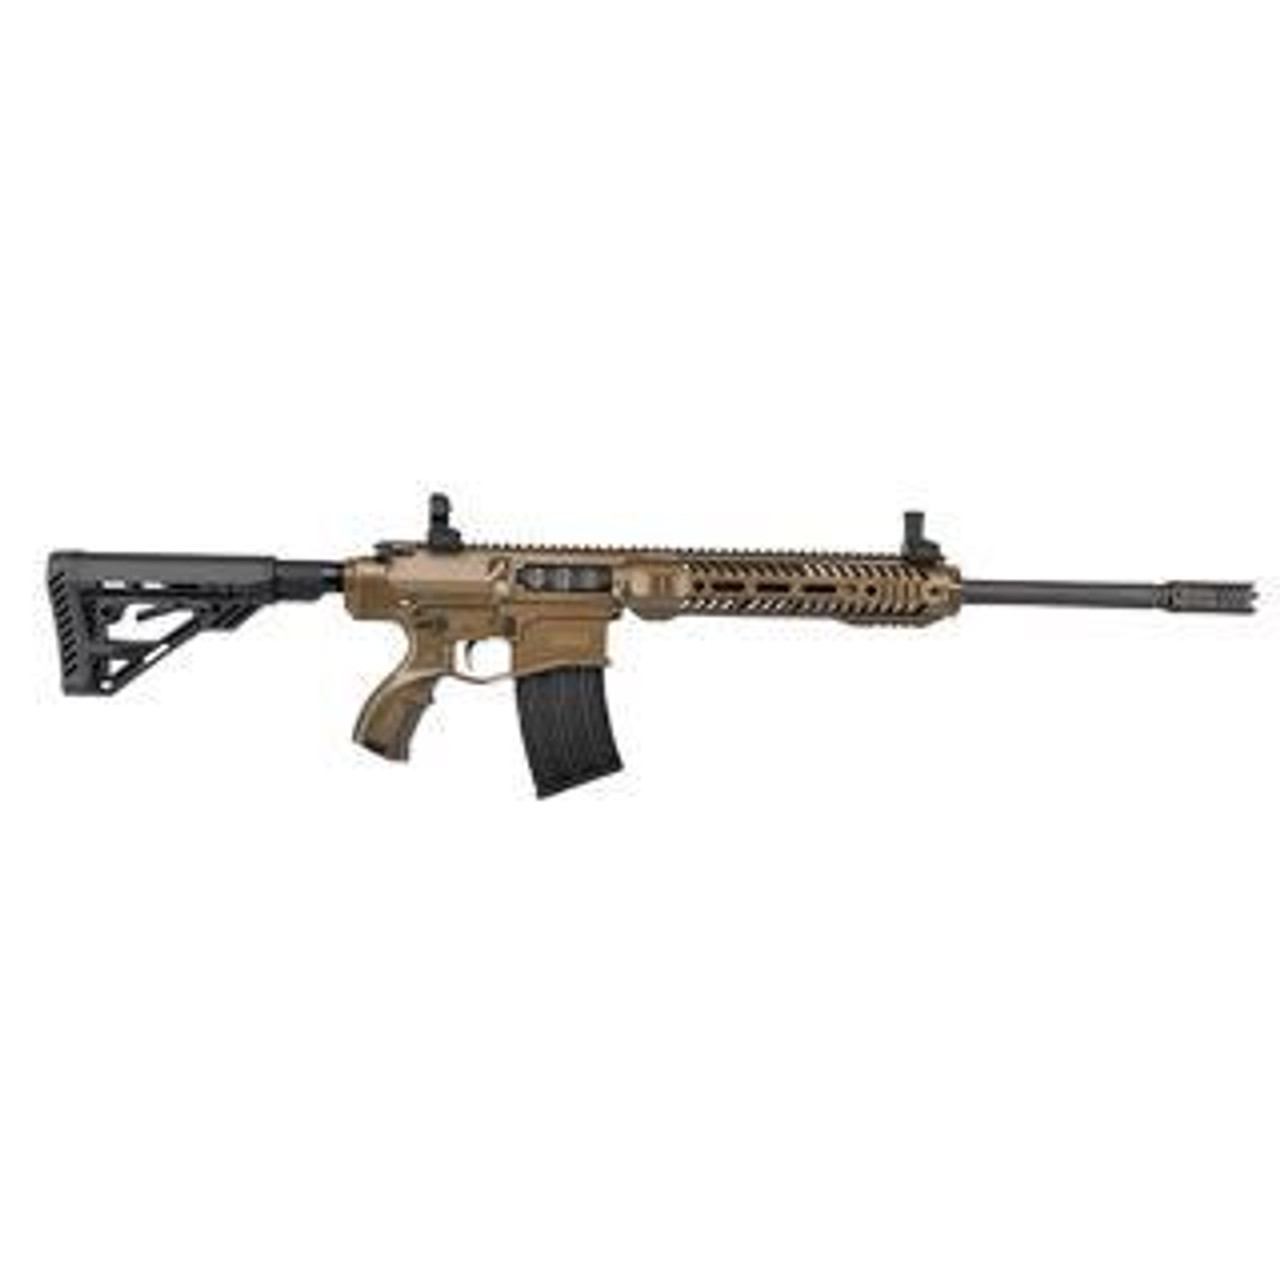 UTAS XTR-12 CALIFORNIA LEGAL - 12ga - Burnt Bronze